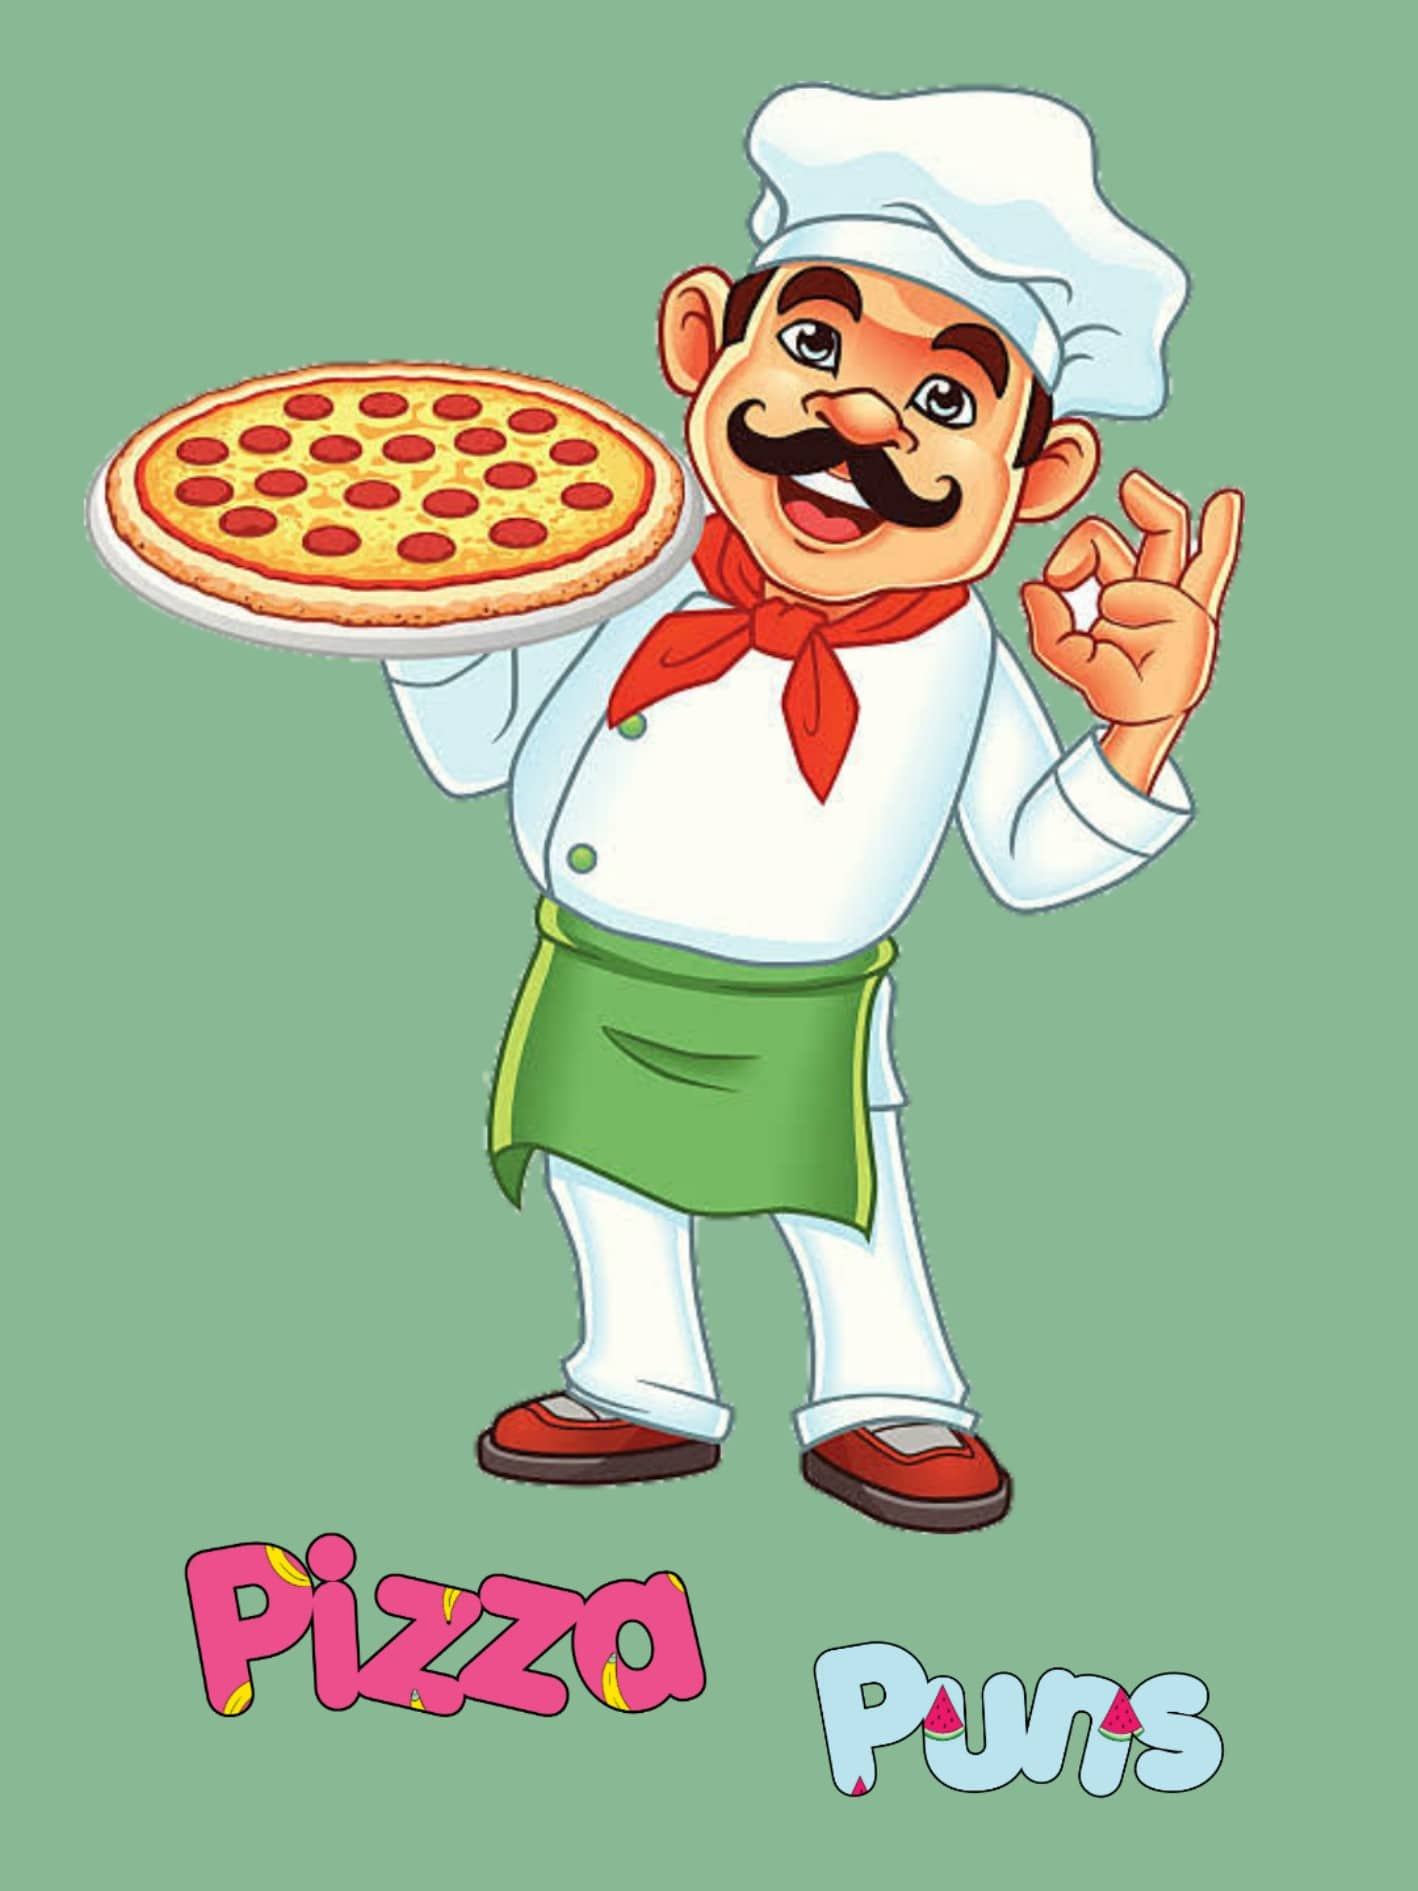 50+ Hilarious Pizza Puns That Will Make You Die Laughing